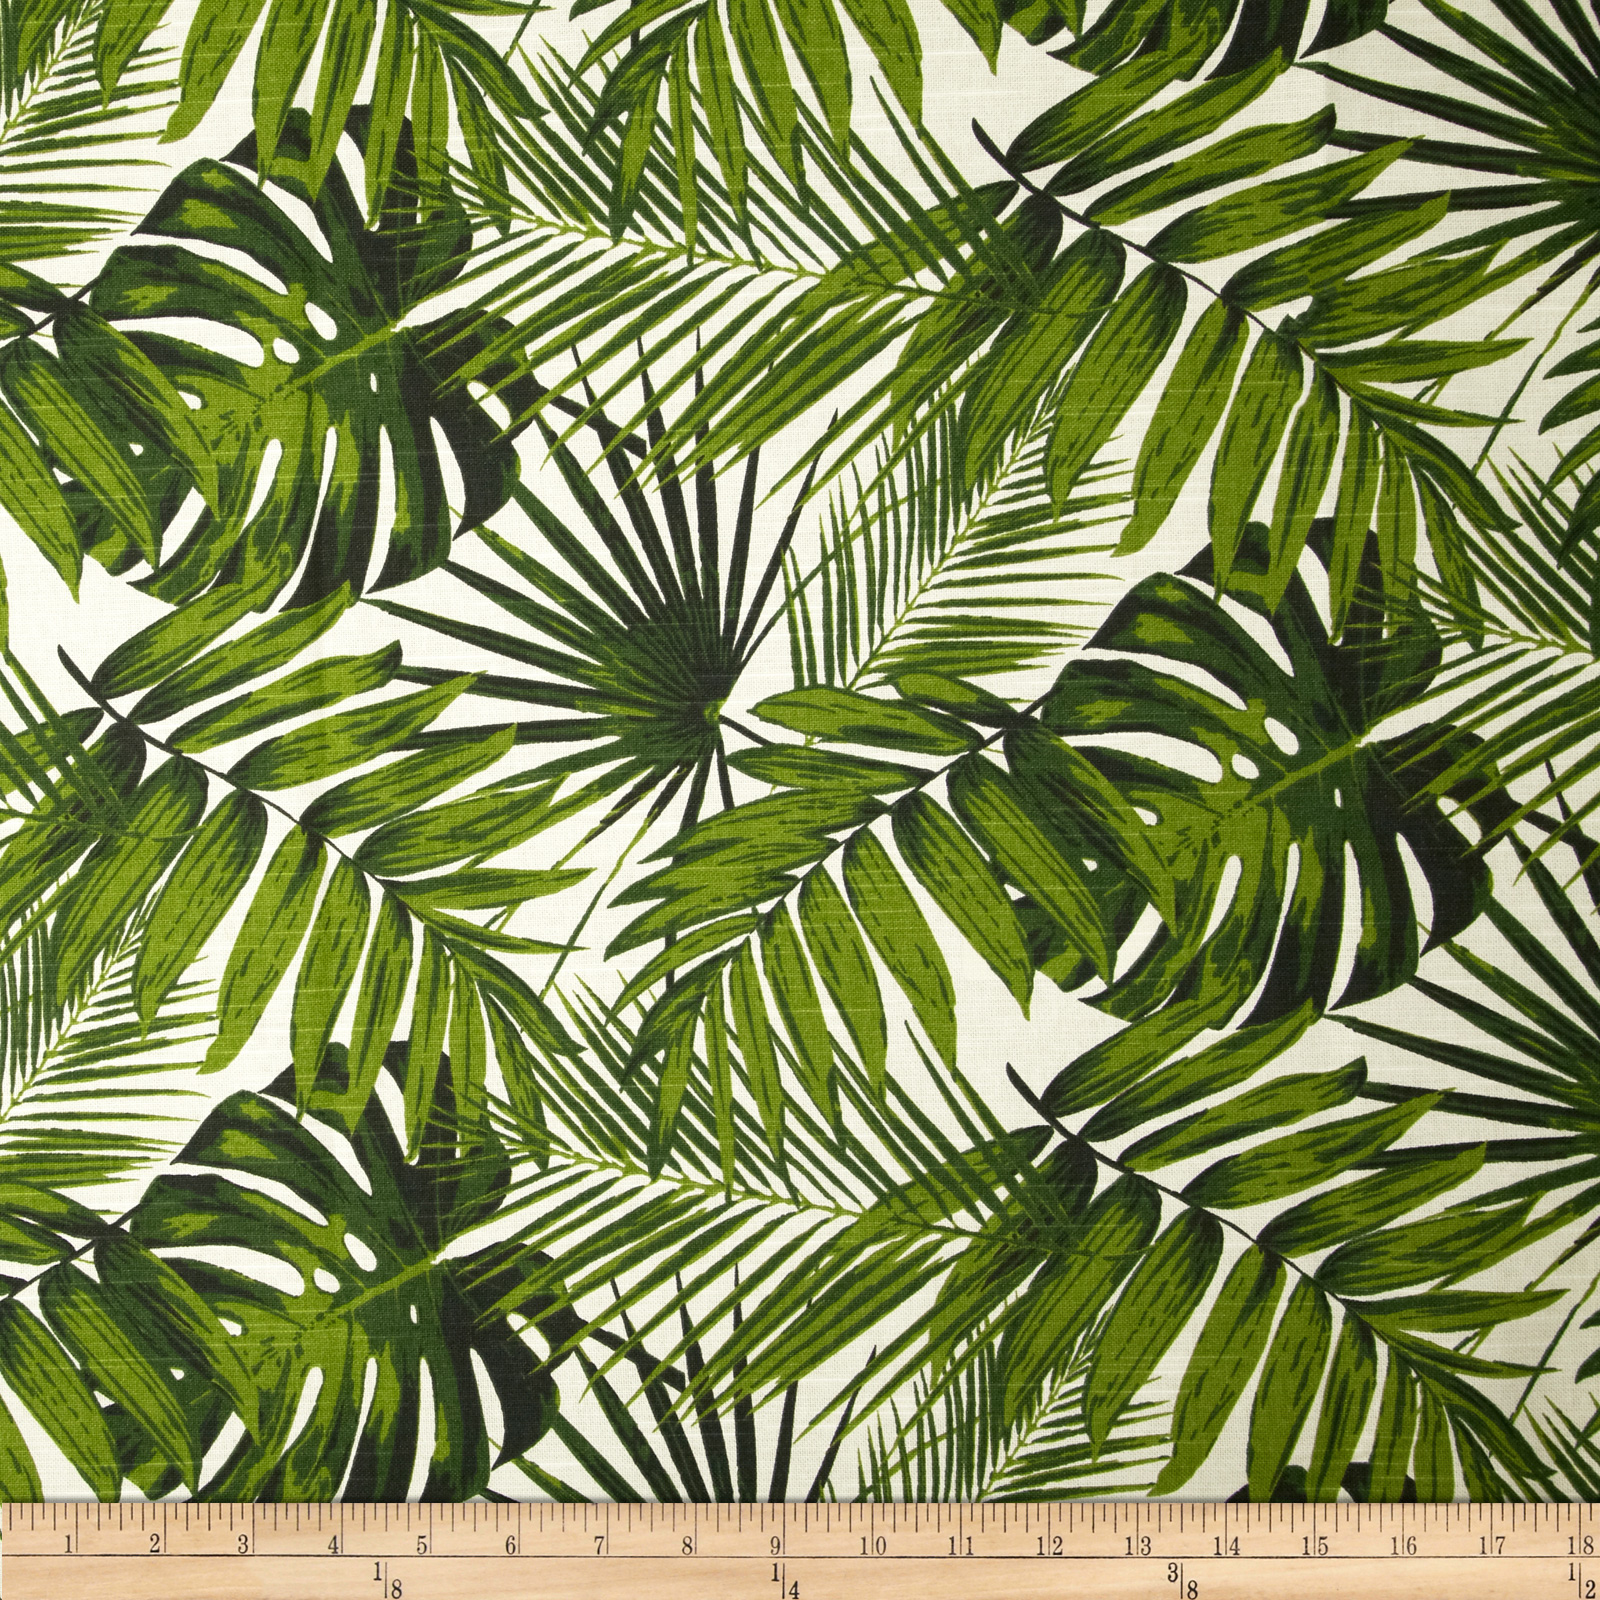 Tempo Tropical Botanics Natural Fabric by Tempro in USA